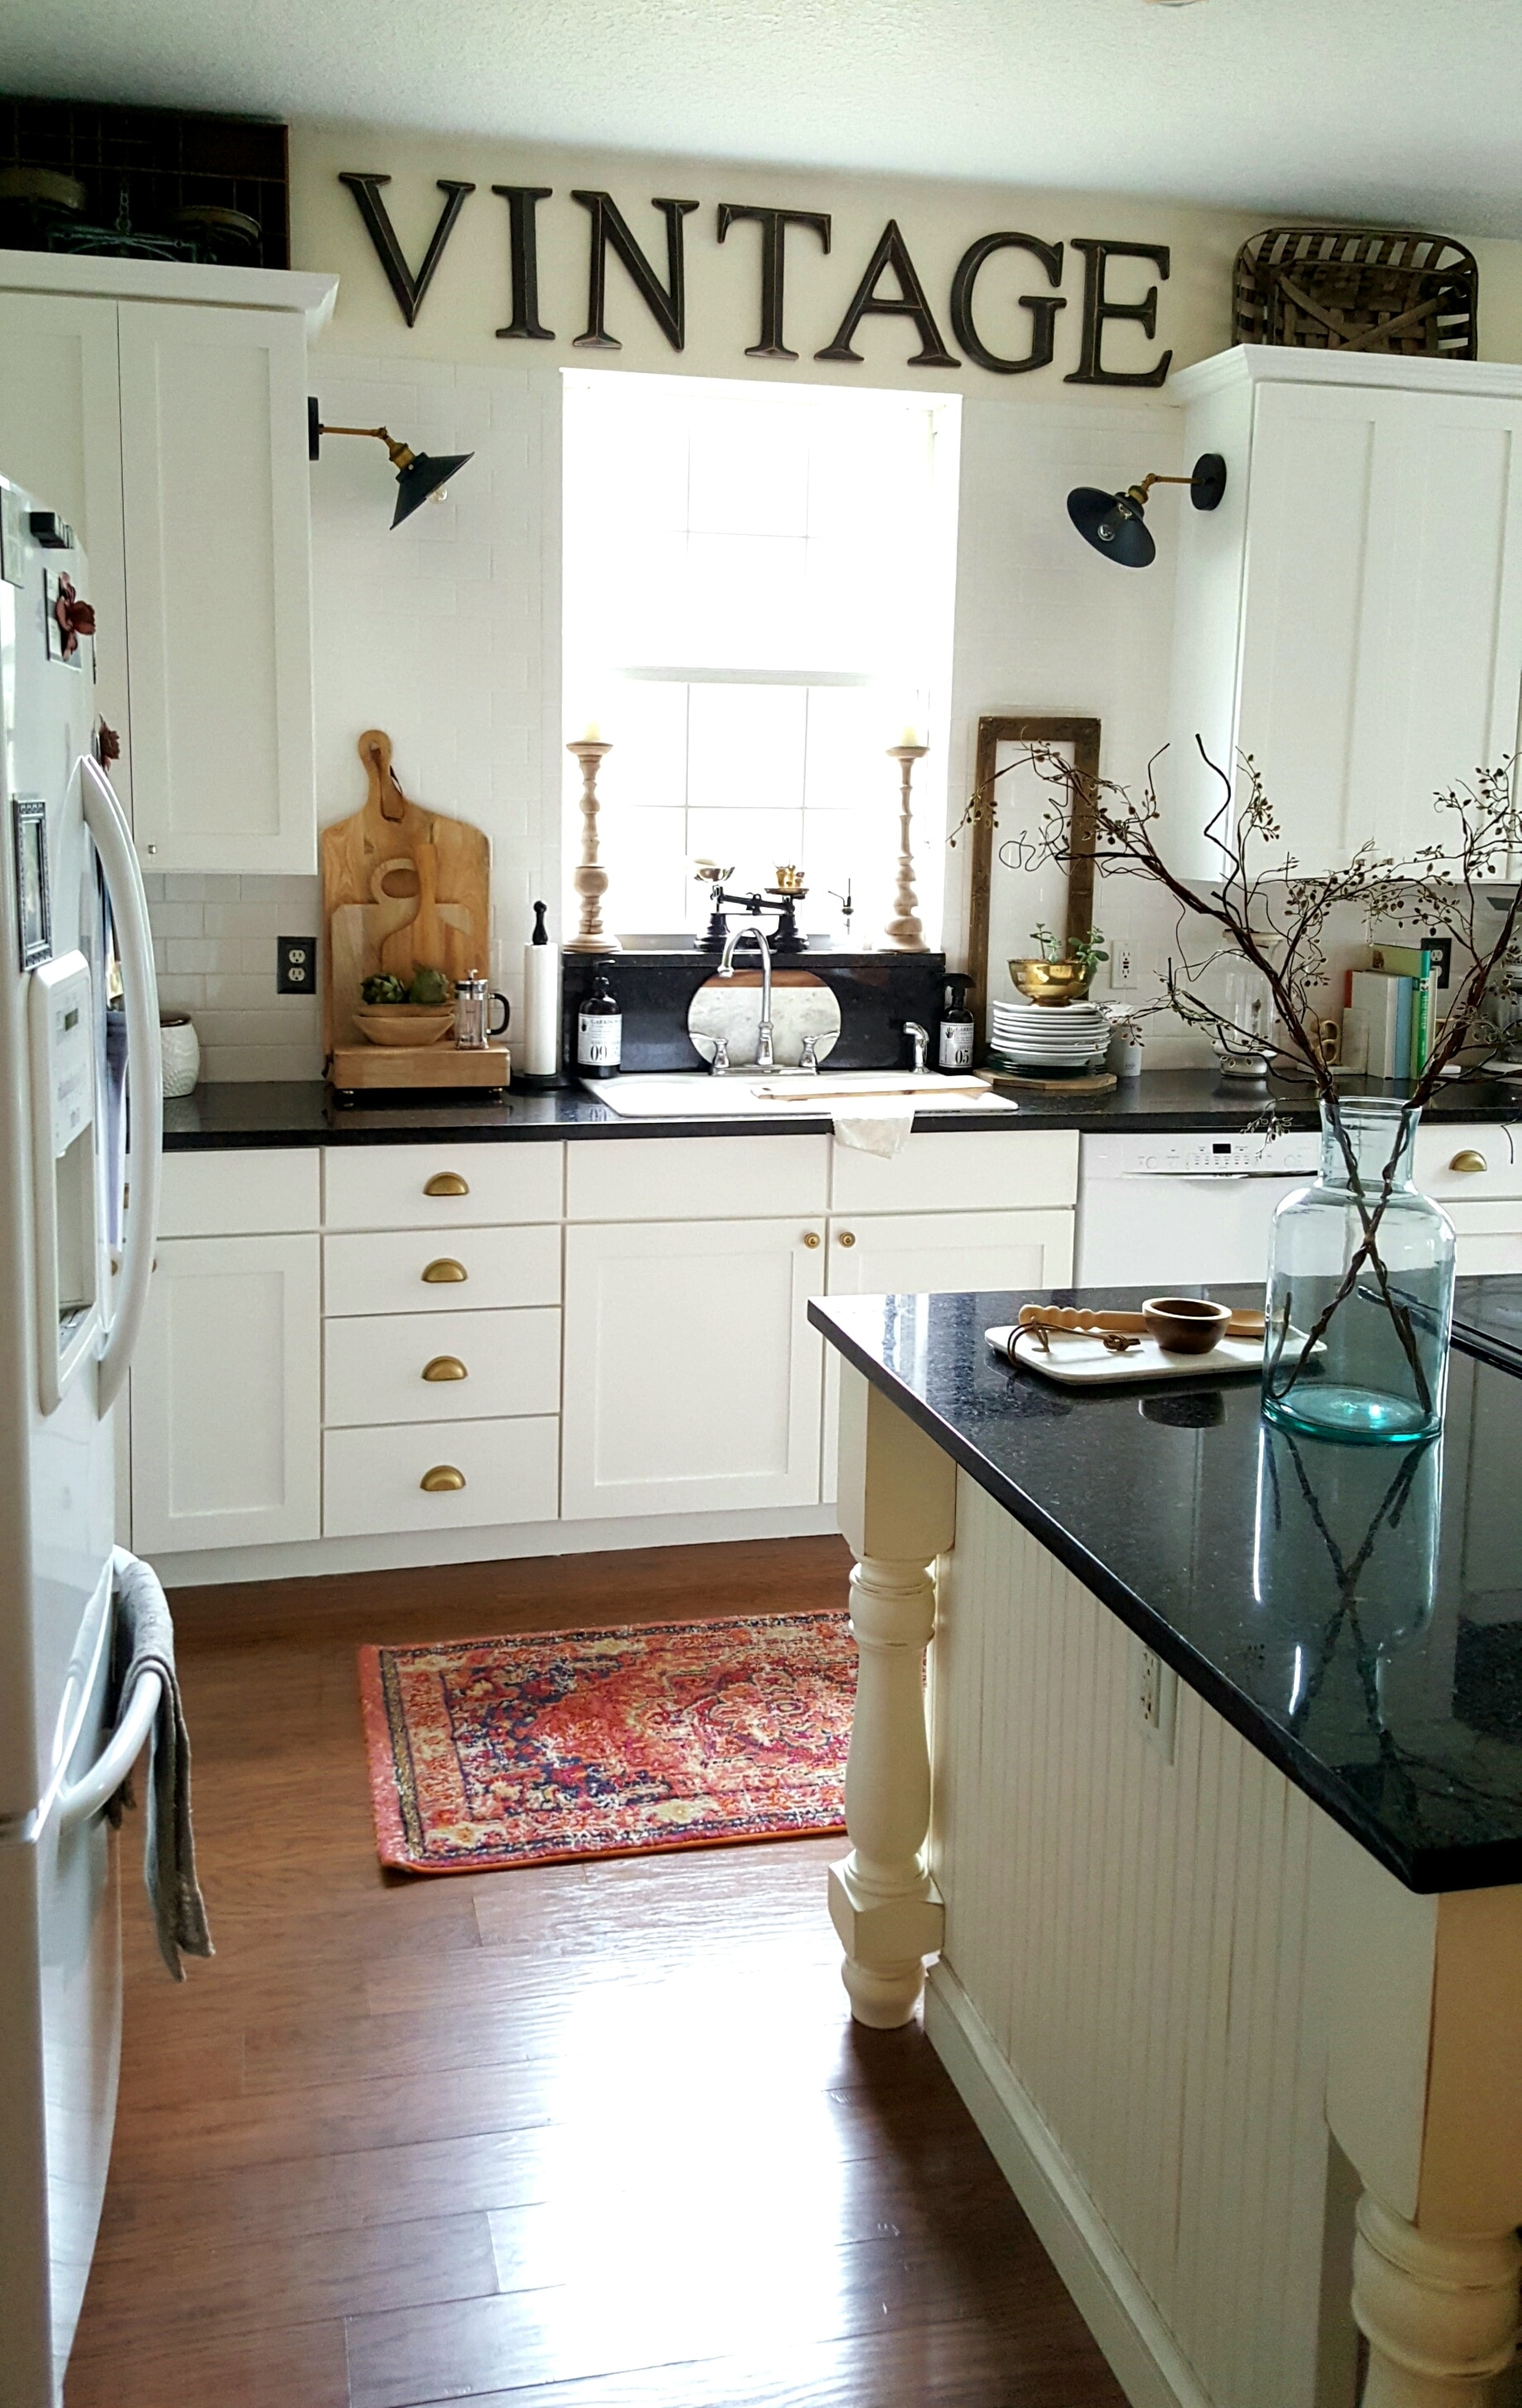 White Kitchen Rug Cabinets Full Shot Bees N Burlap